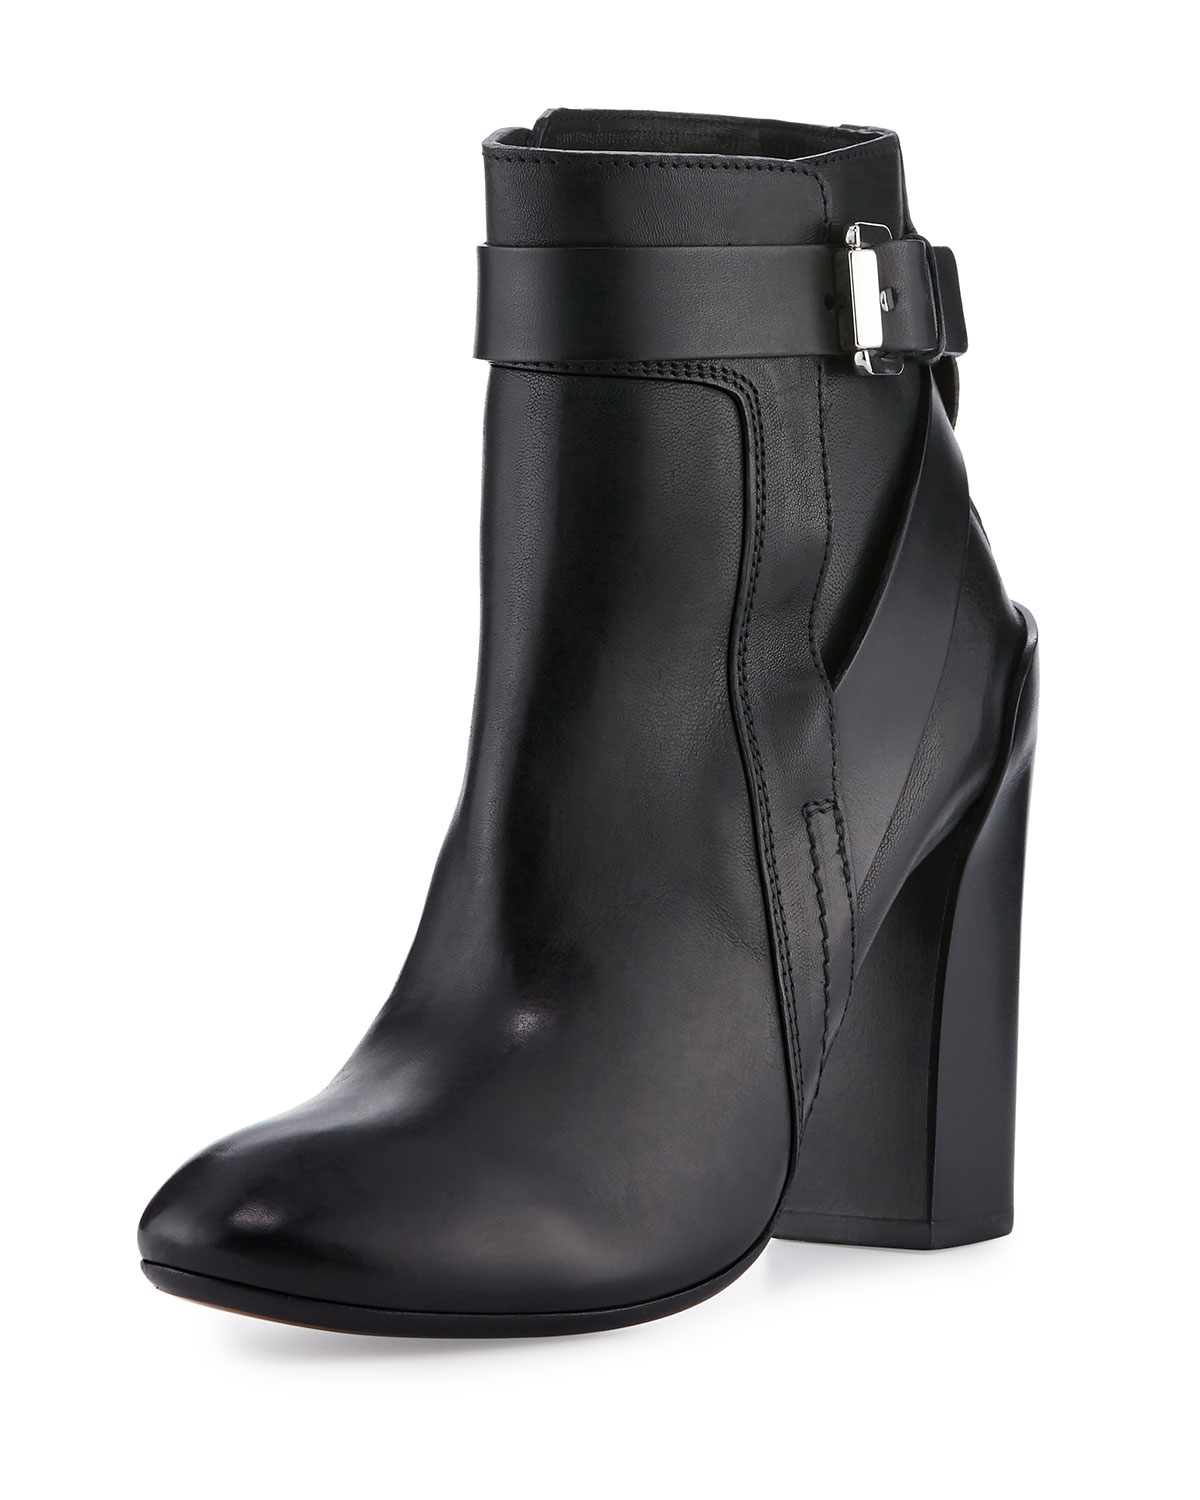 Strappy Leather Ankle Boot, Black, Size: 7B/37EU - CoSTUME NATIONAL